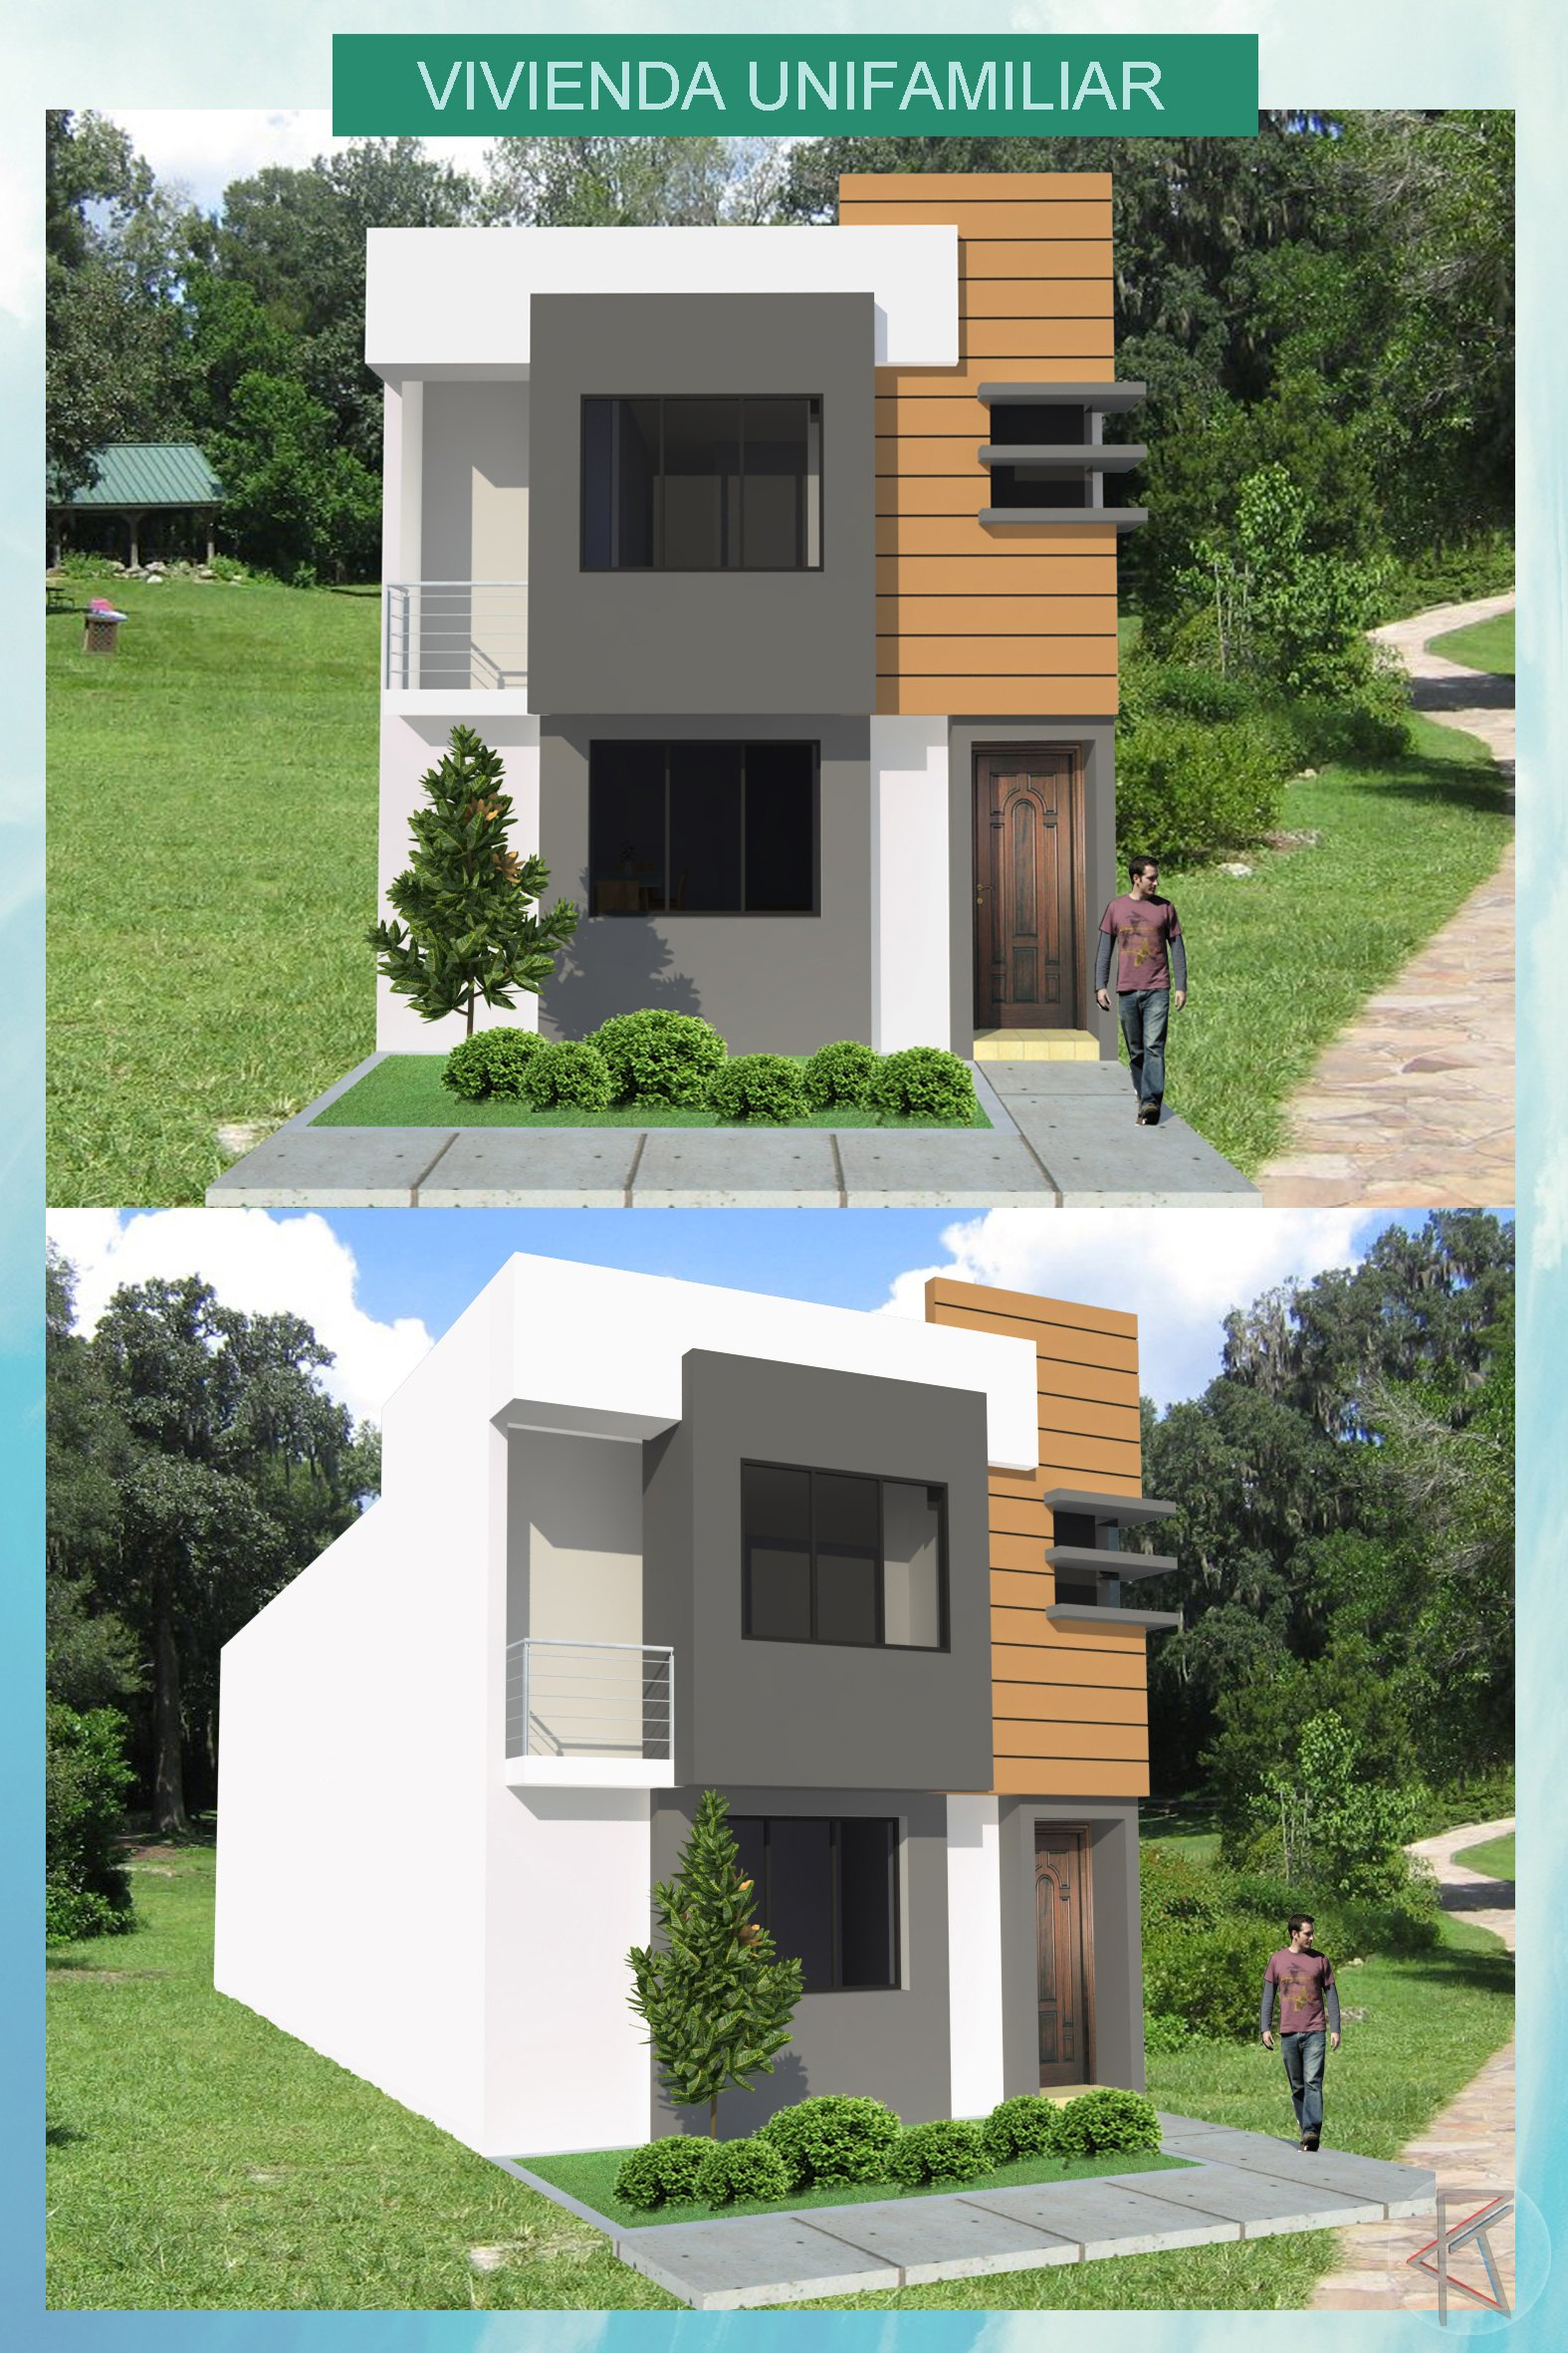 Autocad 3d House Design Software: Single Family House With 3D Images 2D DWG Full Project For